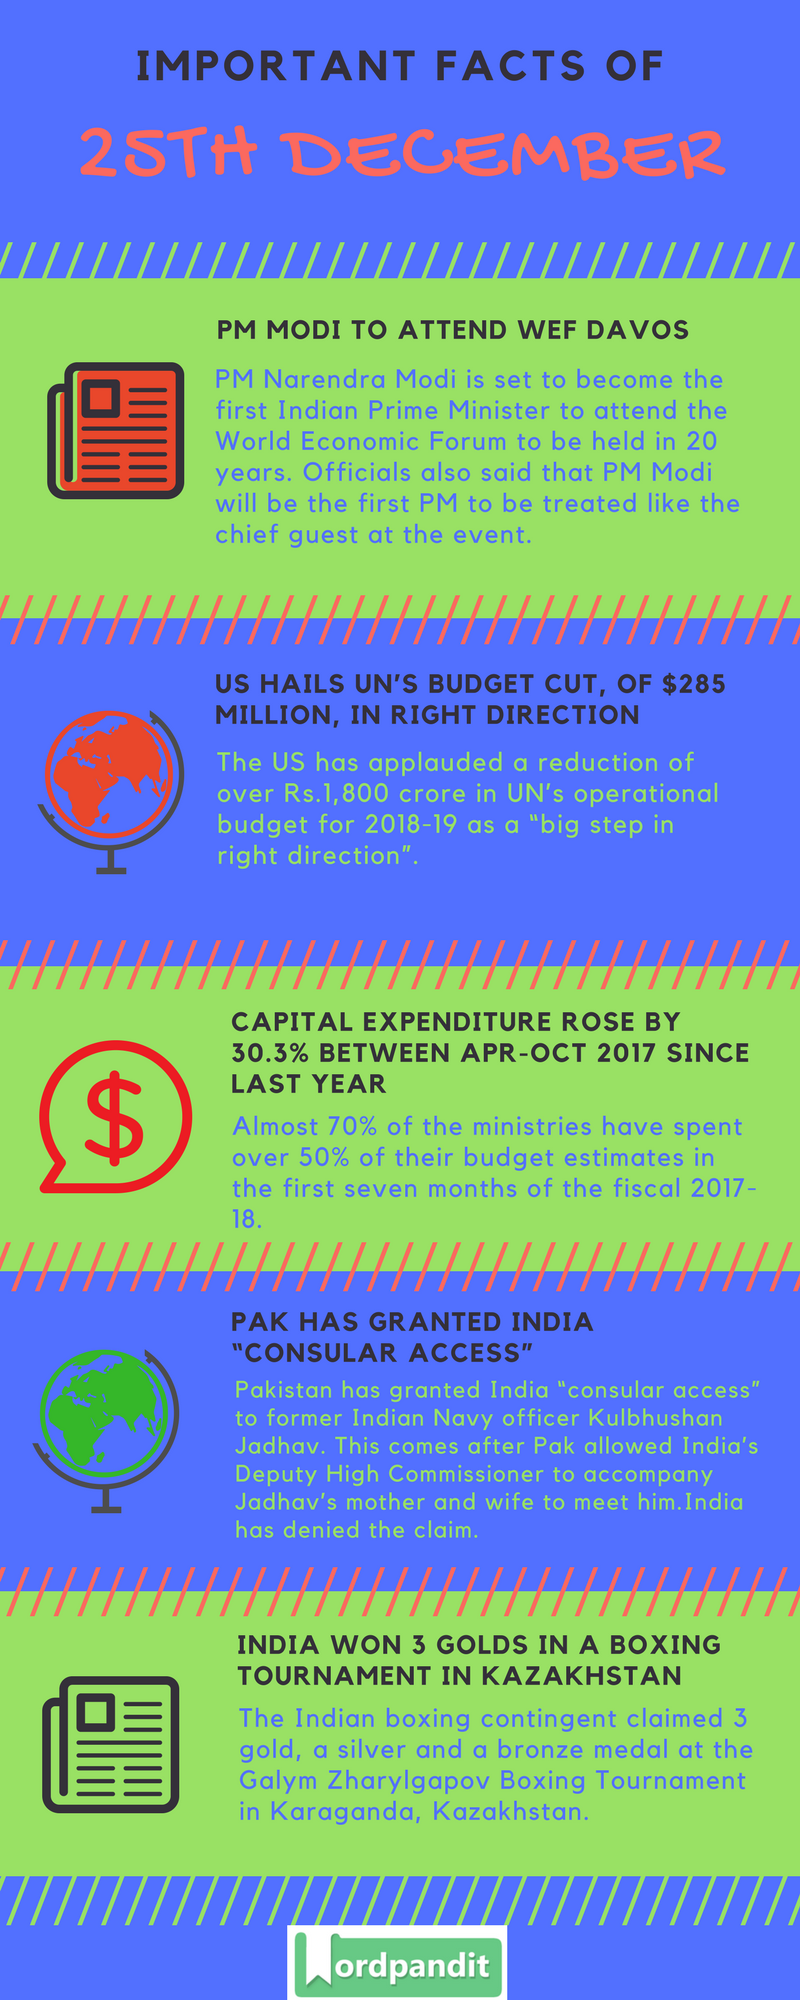 Daily-Current-Affairs-23-december-2017-Current-Affairs-Quiz-december-23-2017-Current-Affairs-Infographic